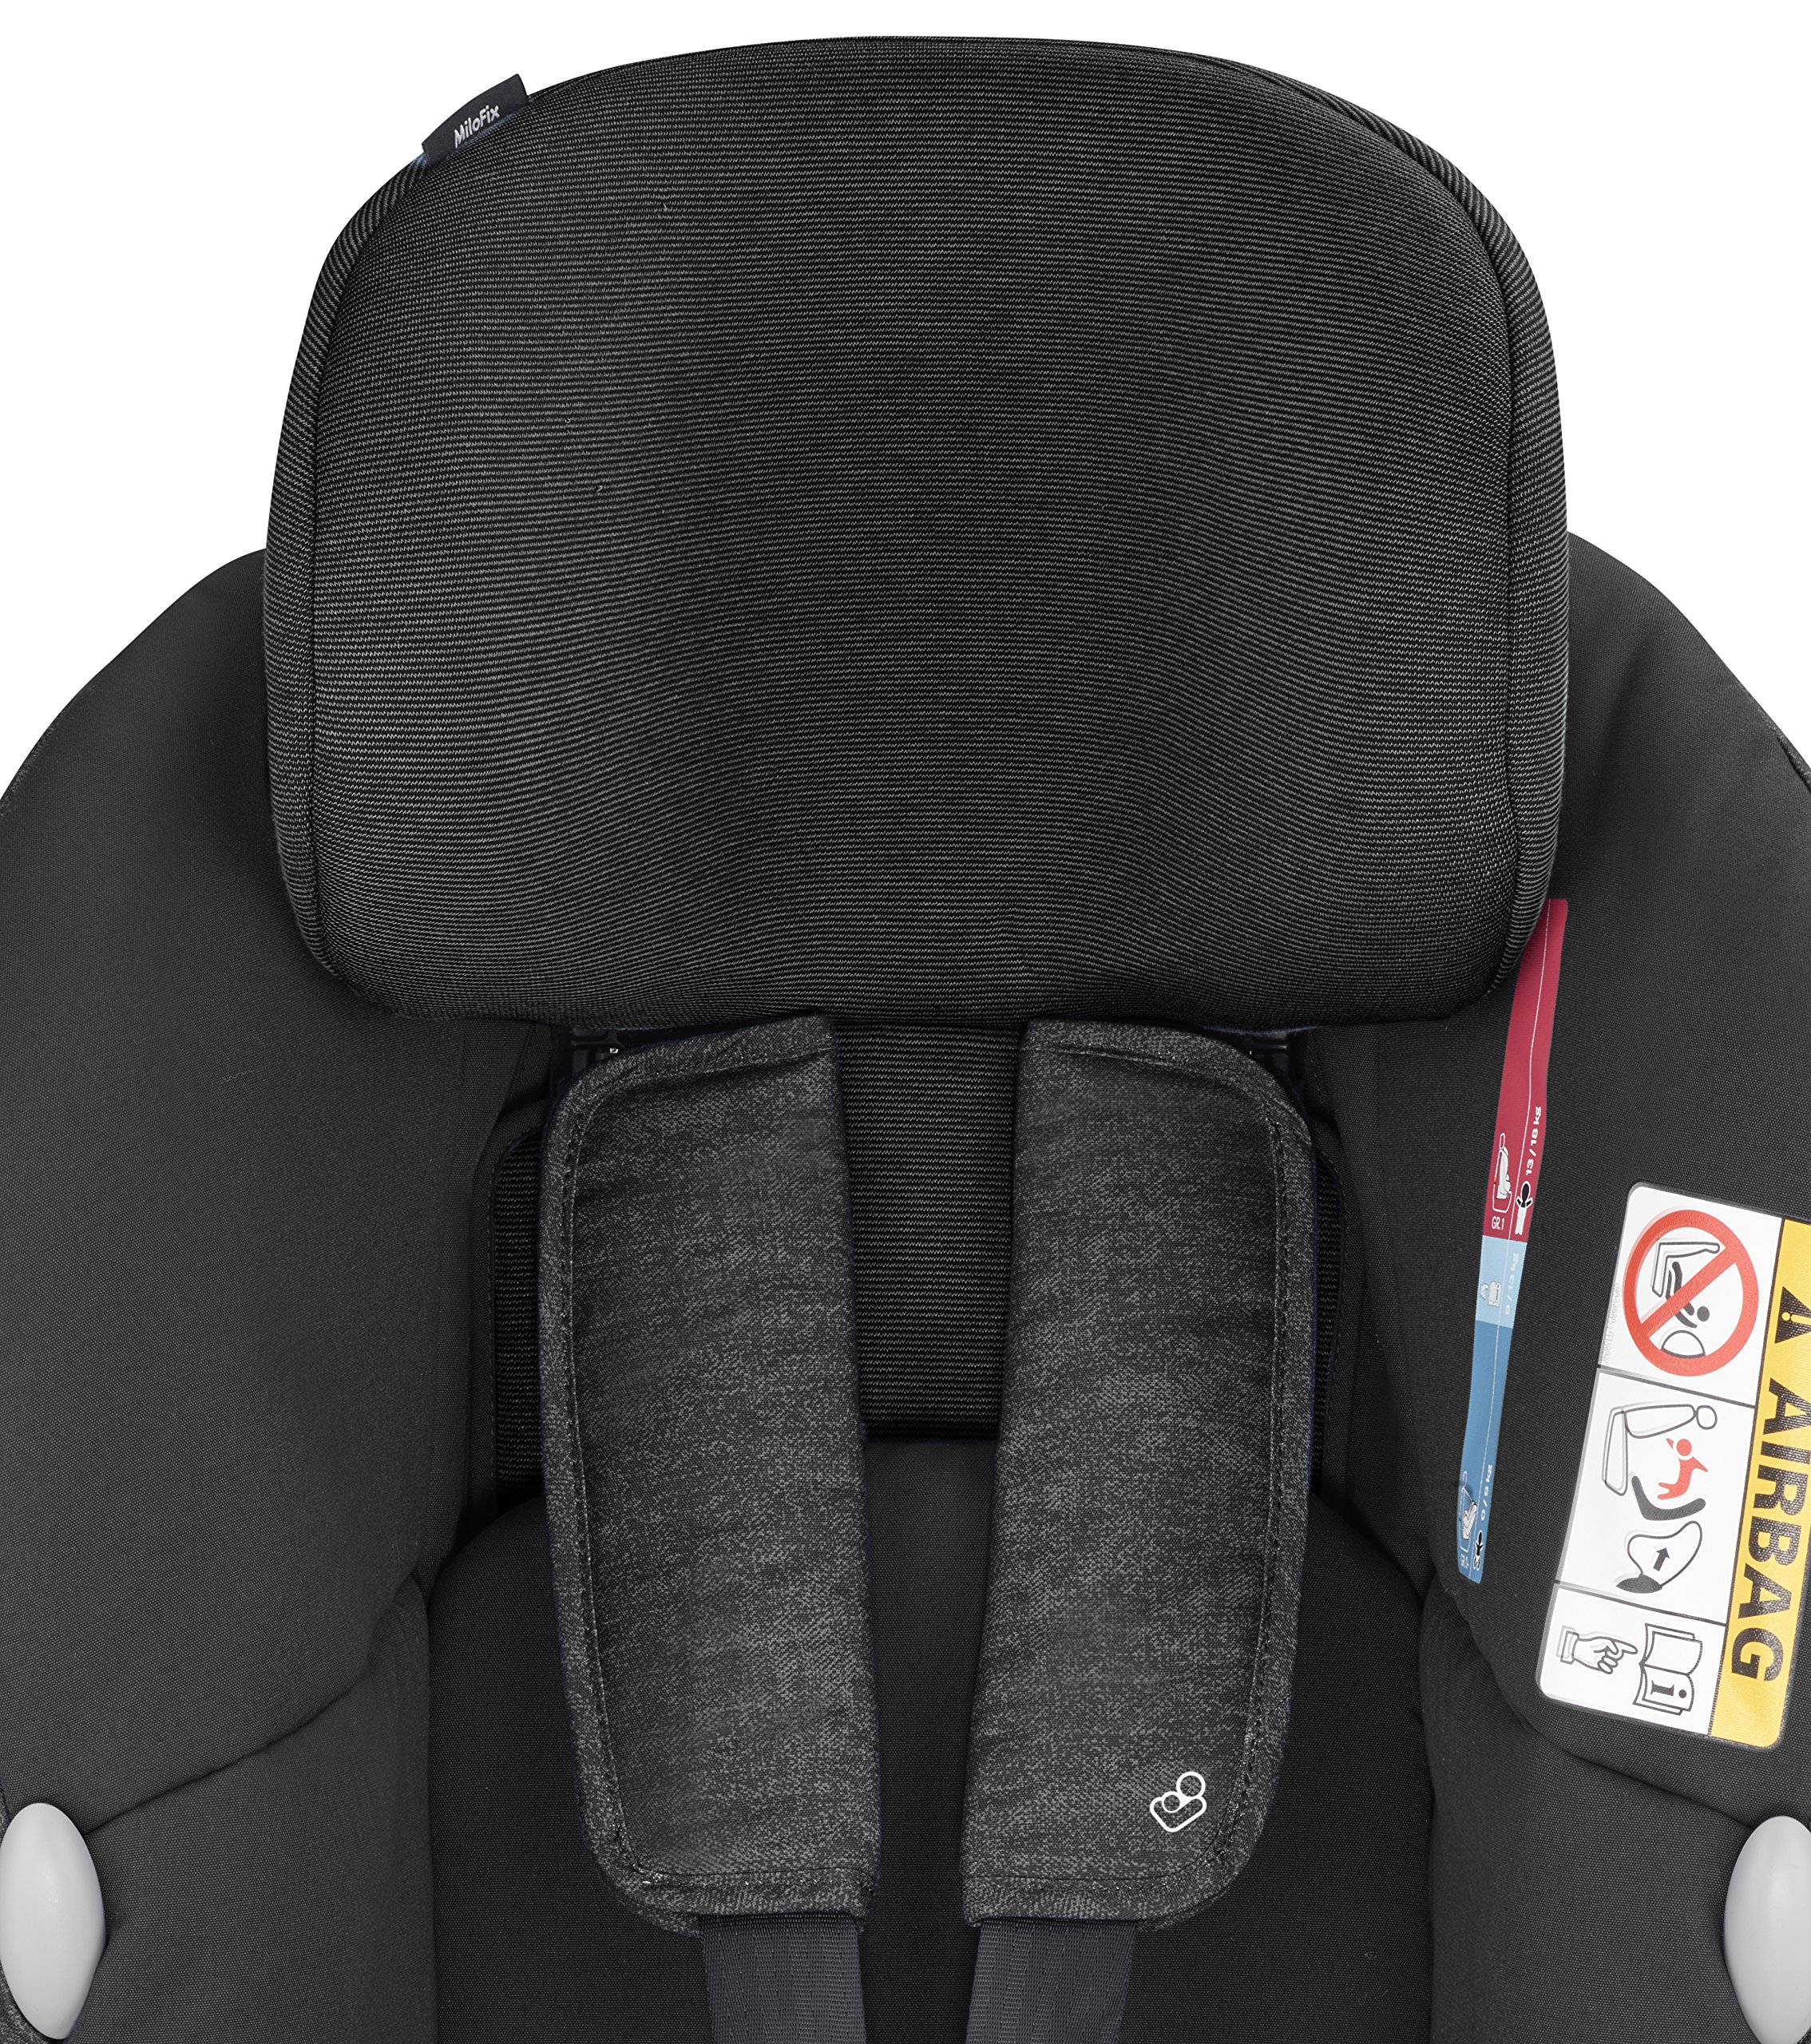 Maxi-Cosi MiloFix ISOFIX Combination Car Seat, Group 0+/1 car seat, Rear and Forward-facing, 0-4 years, 0-18 kg, Nomad Black Maxi-Cosi Rear and forward facing group 0+/1 car seat, suitable from birth to 18 kg (birth to 4 years) i-Size car seat, extended rearward-facing travel up until 18 months Padded seat and angled base provide additional leg room in rear-facing position 4